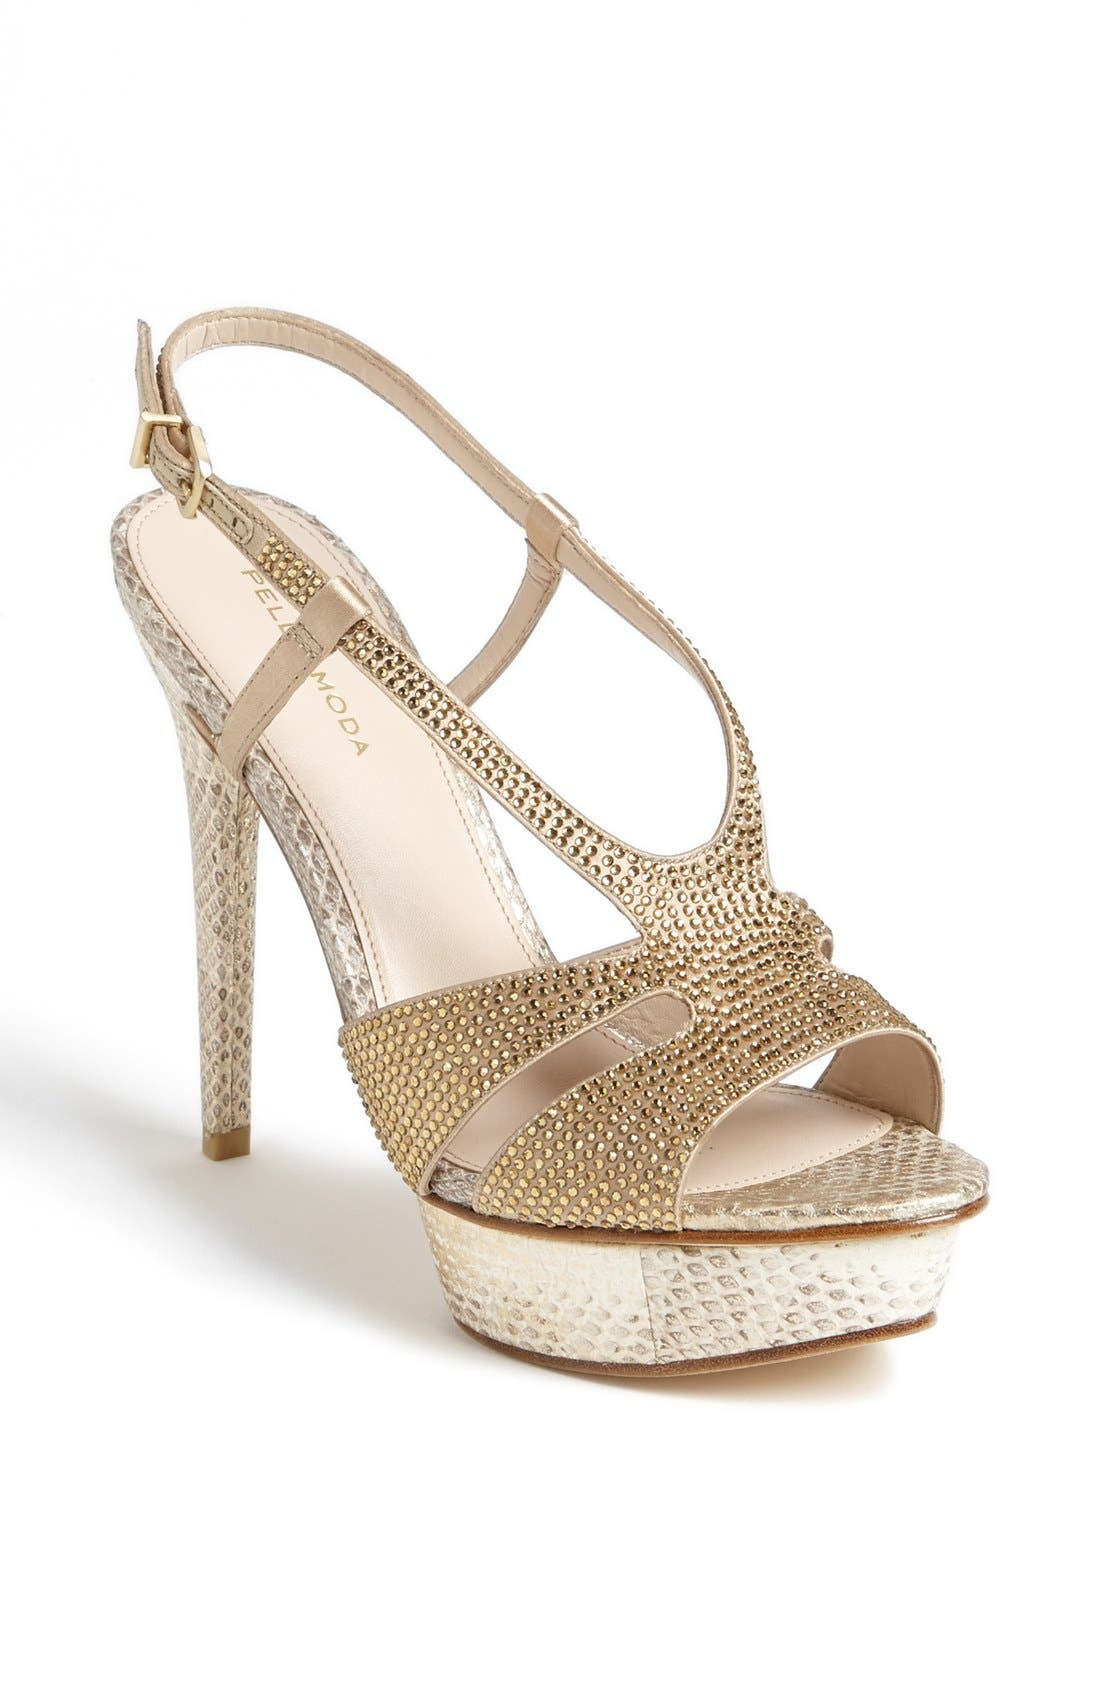 Alternate Image 1 Selected - Pelle Moda 'Hana' Sandal